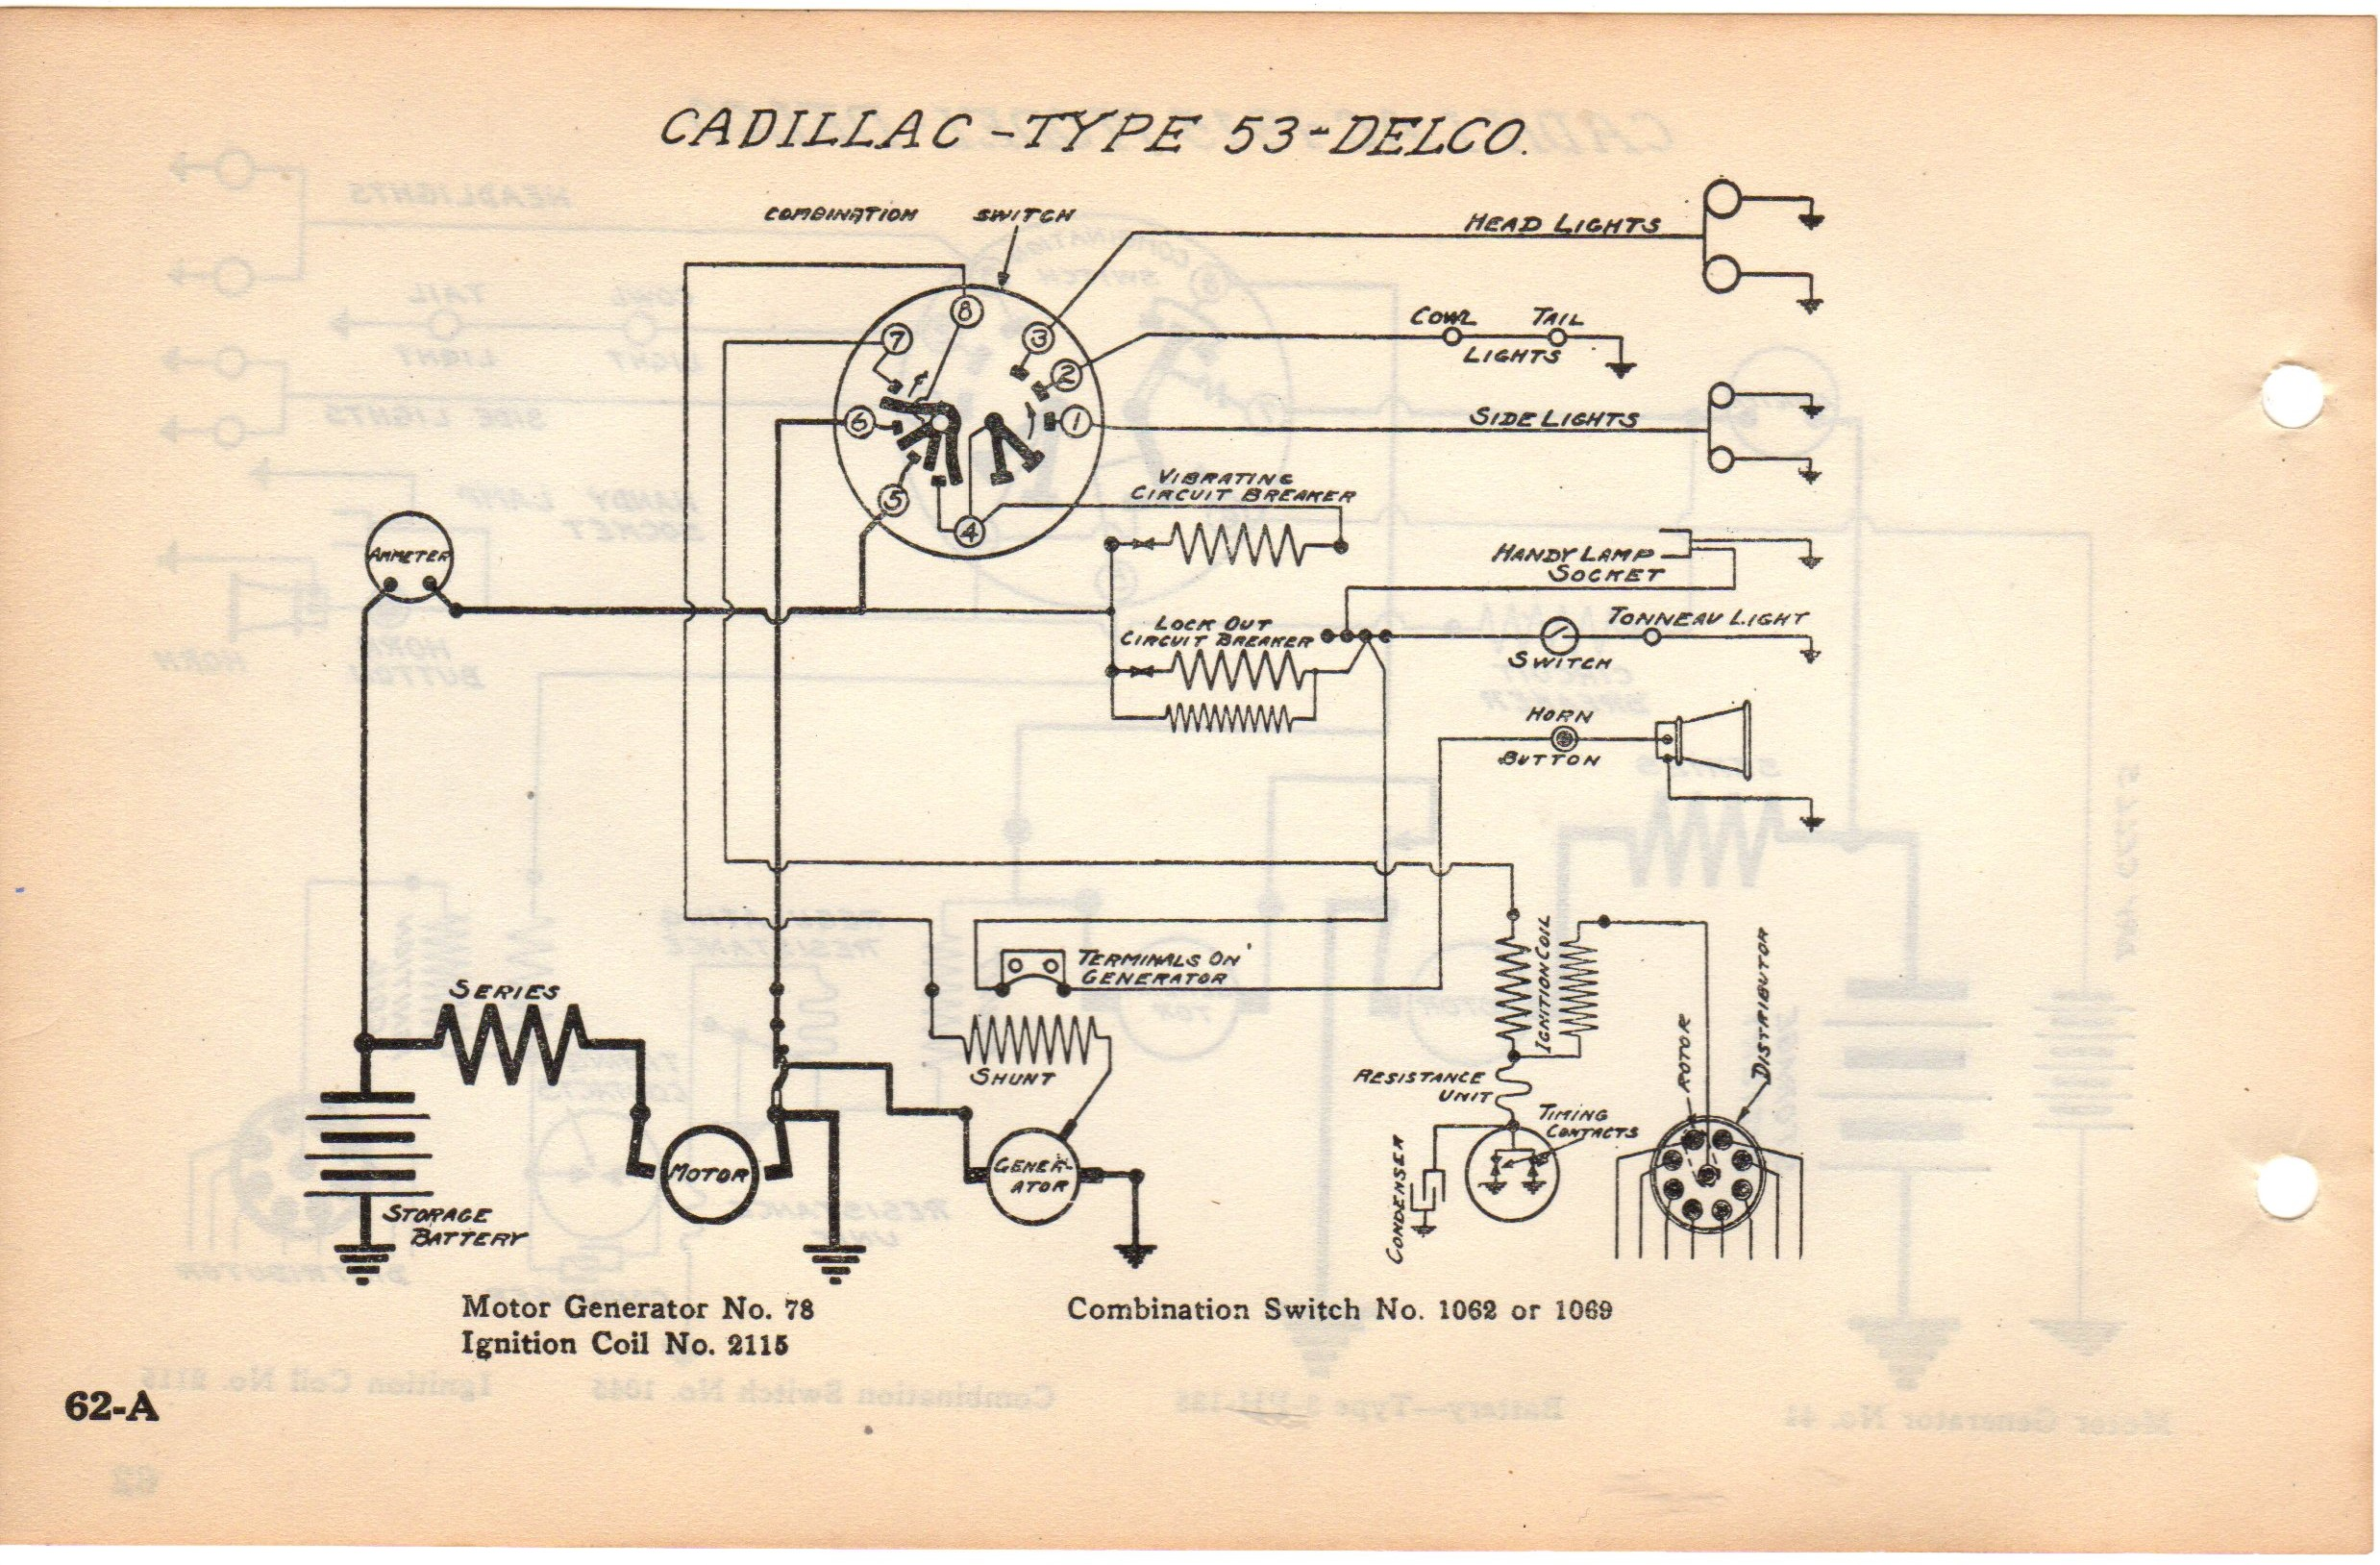 6 Volt Wiring Diagram 1947 Buick Diy Wiring Diagrams \u2022 International  234 Wiring Diagram Voltage Regulator Wiring Diagram Farmall 350